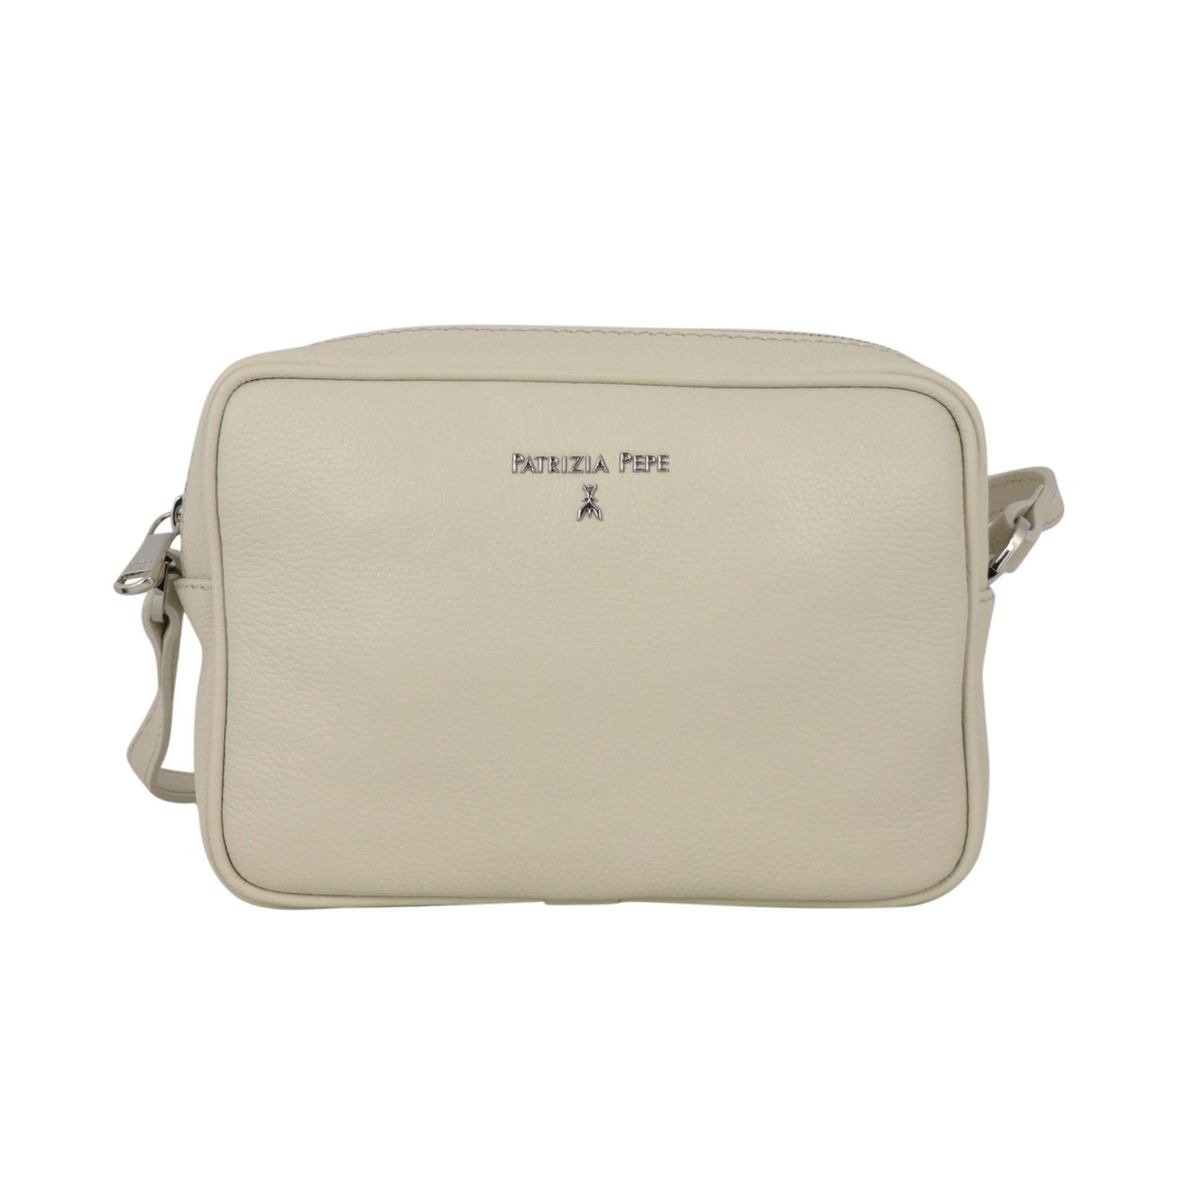 Small shoulder bag in textured leather with embossed metal logo Ivory Patrizia Pepe